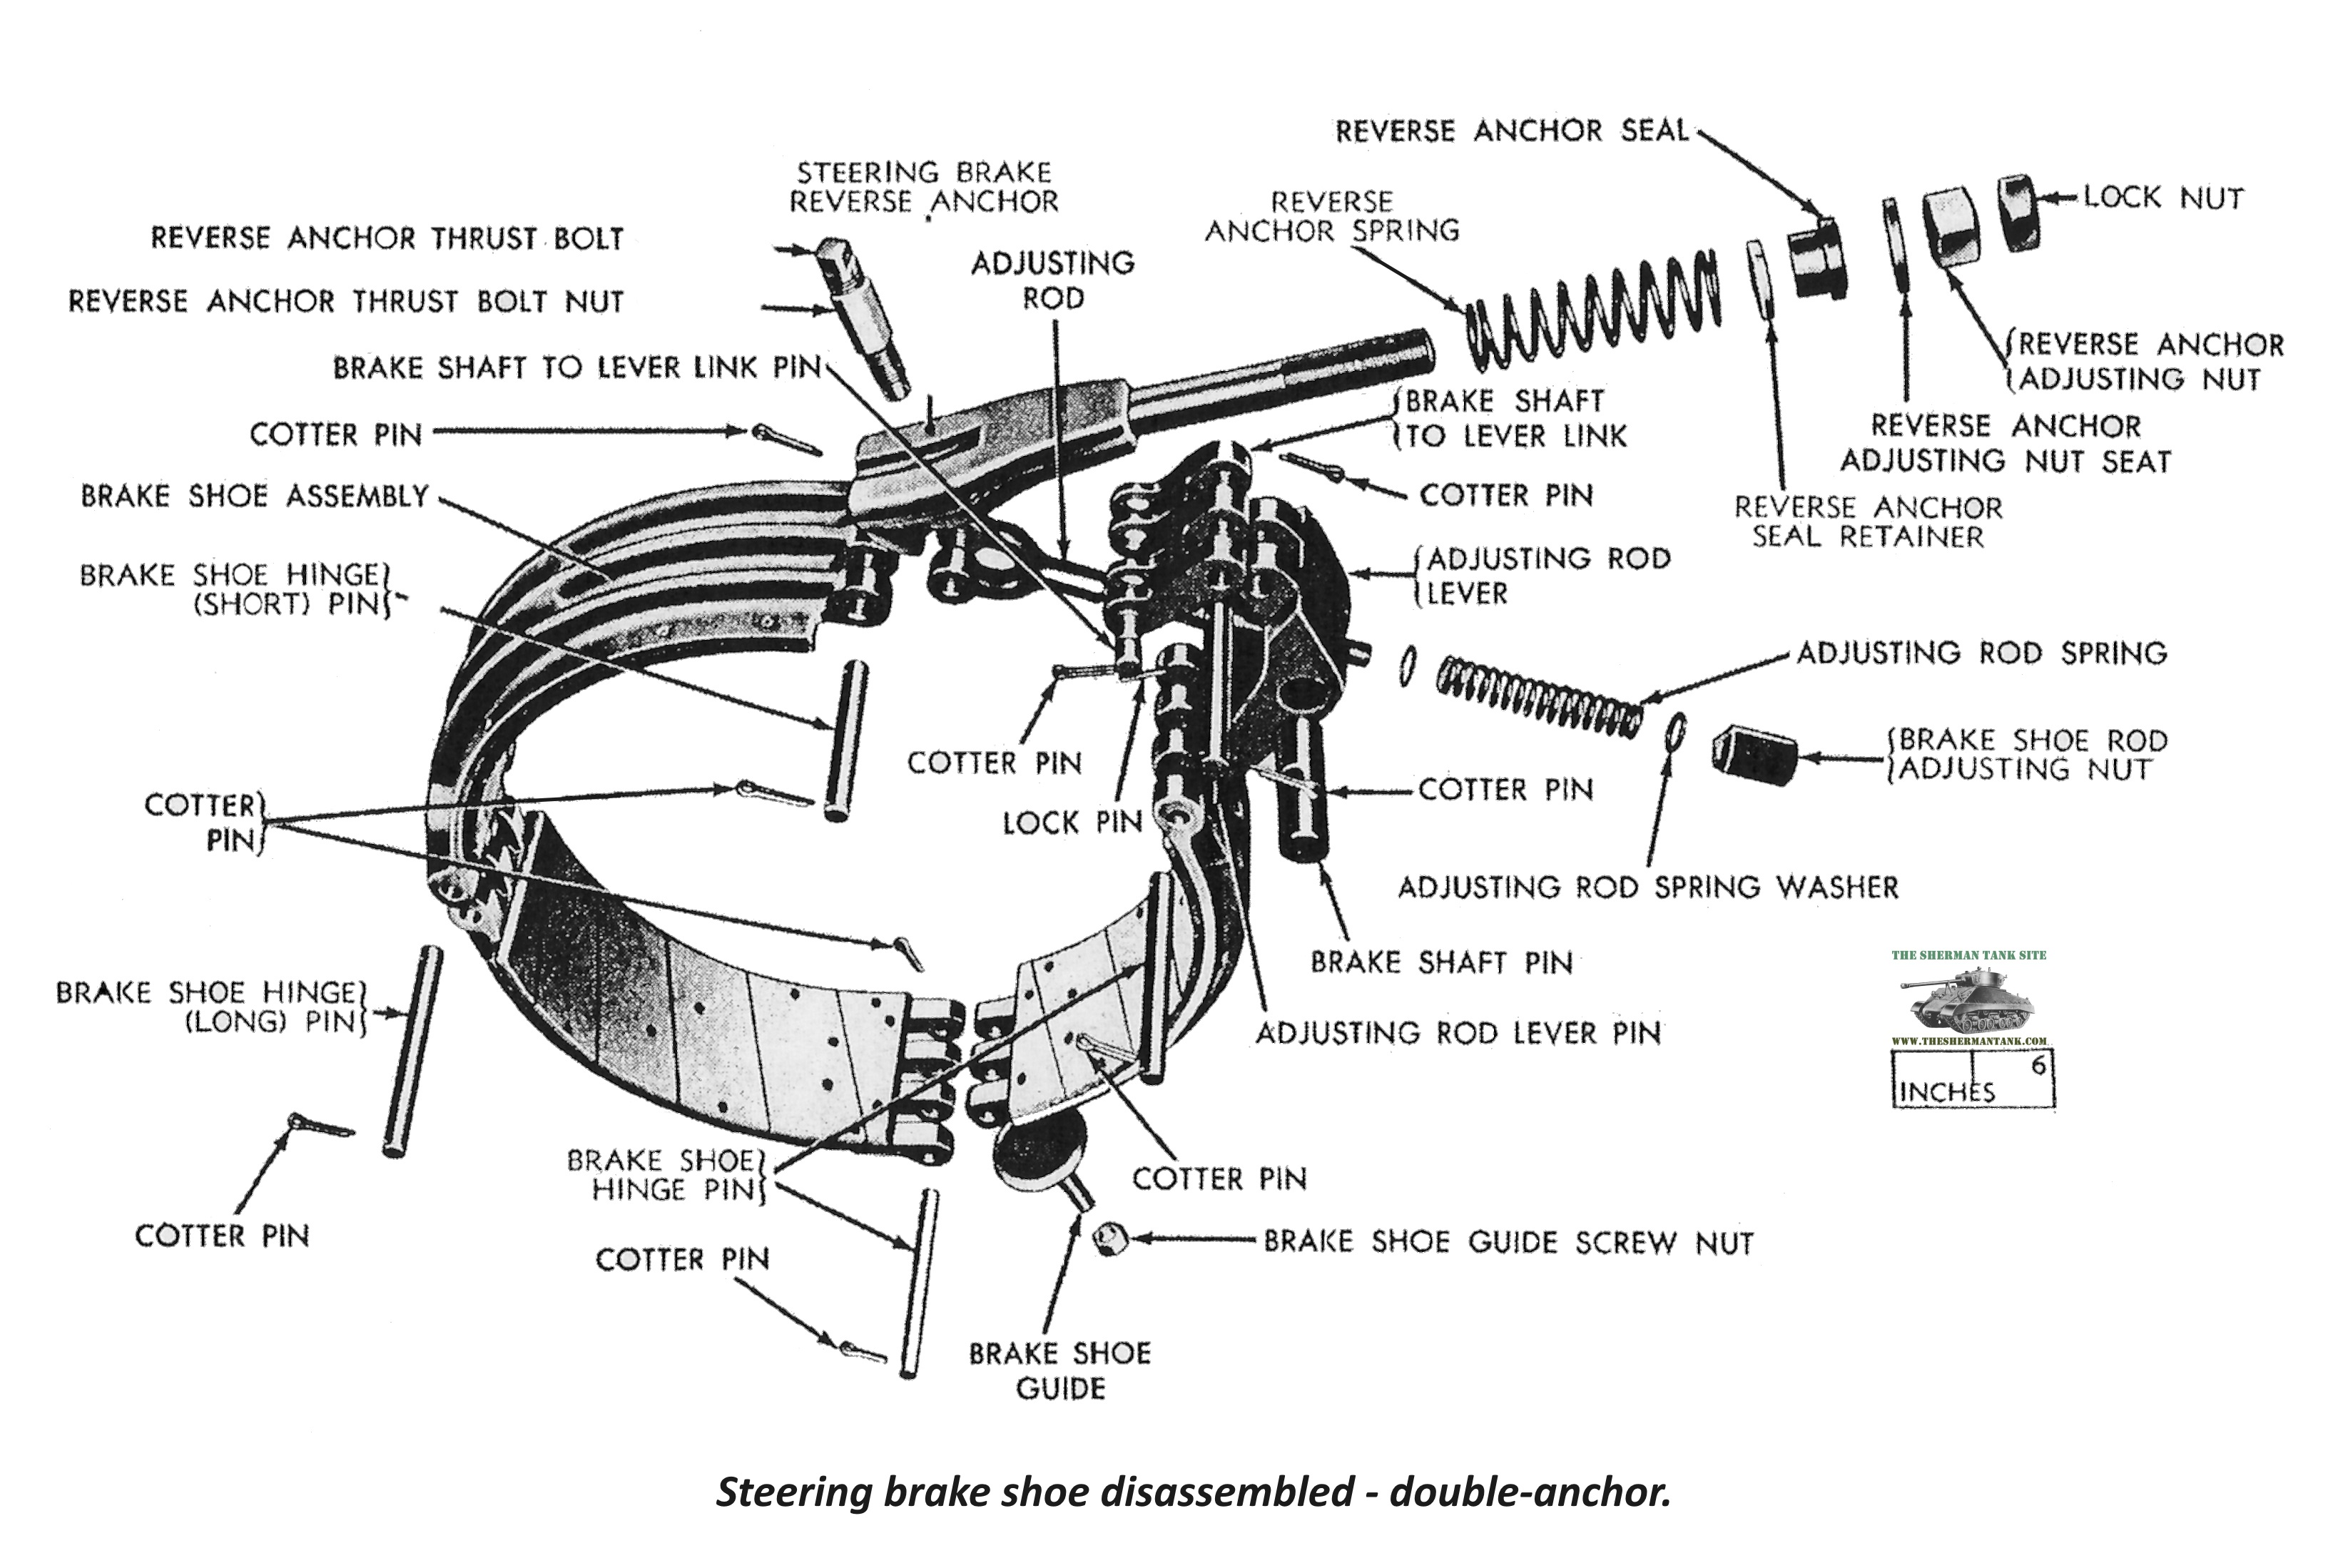 F252 Steering brake shoe disassembled double anchor improved 7 15 flat sherman tank site post 75, from the army motors archive your m4